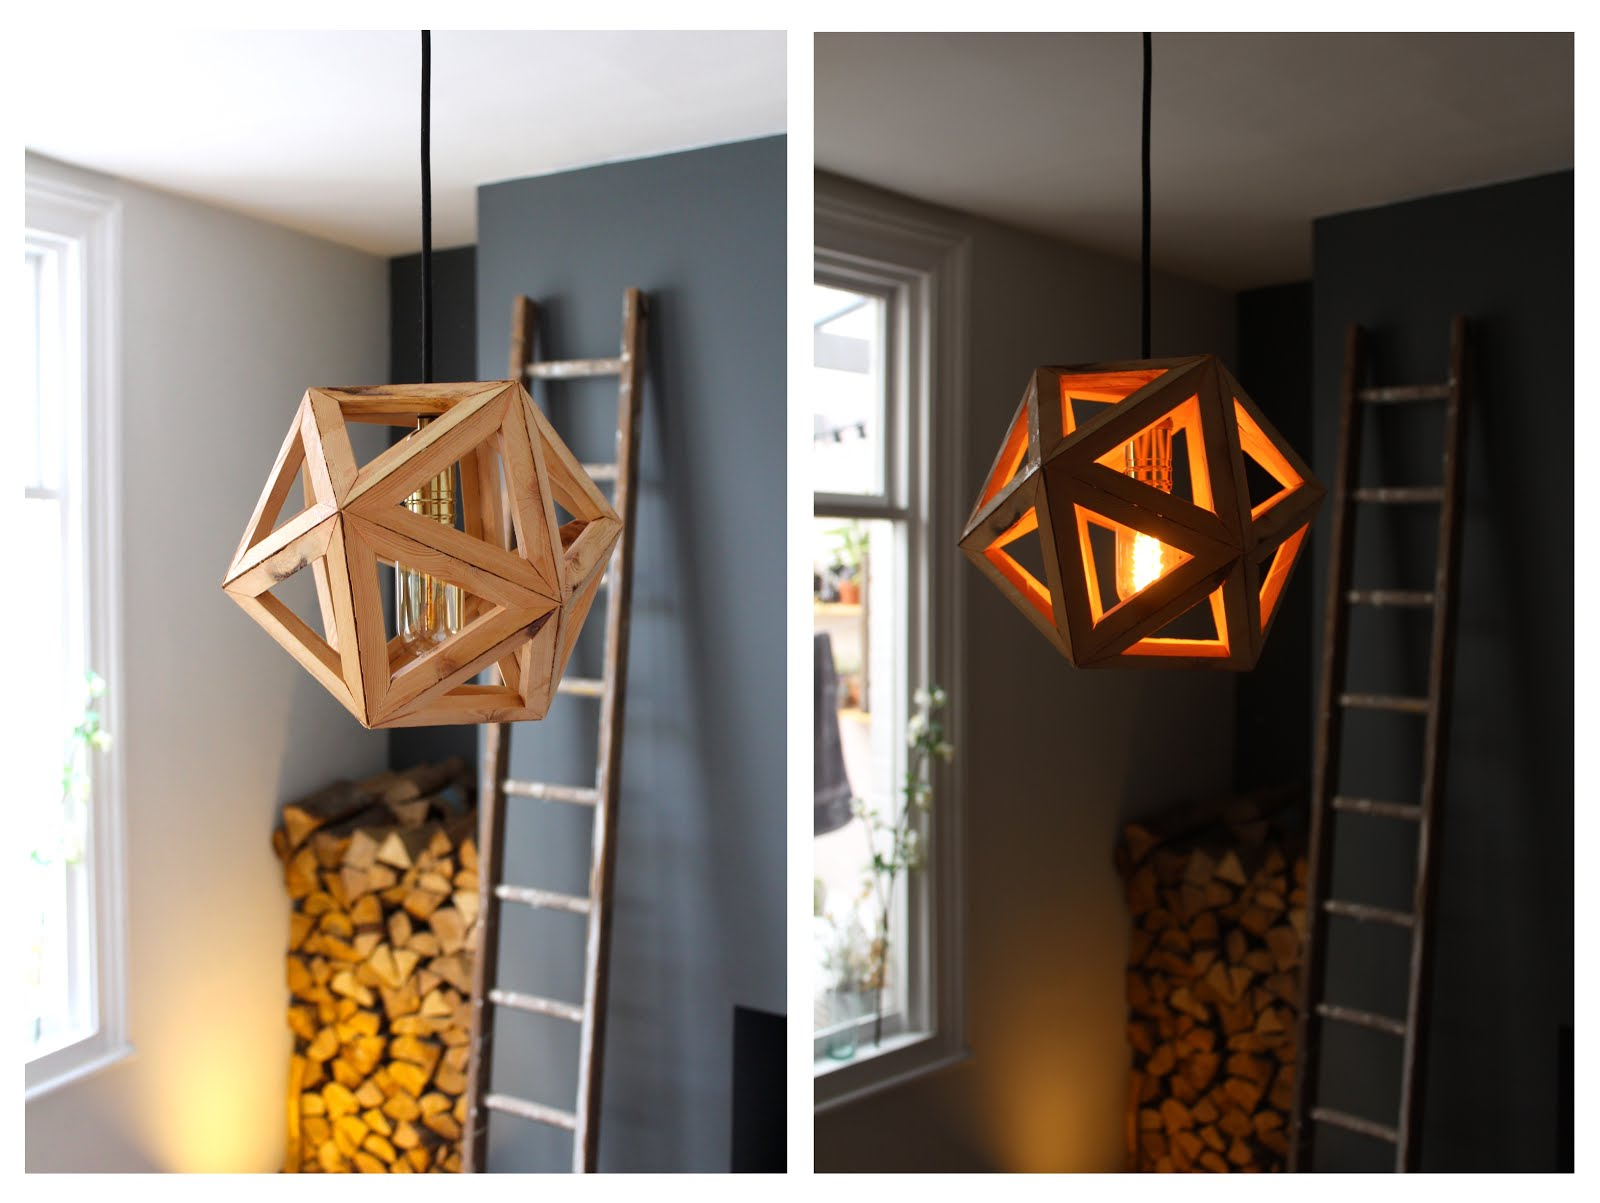 icosahedron geometric ceiling light DIY